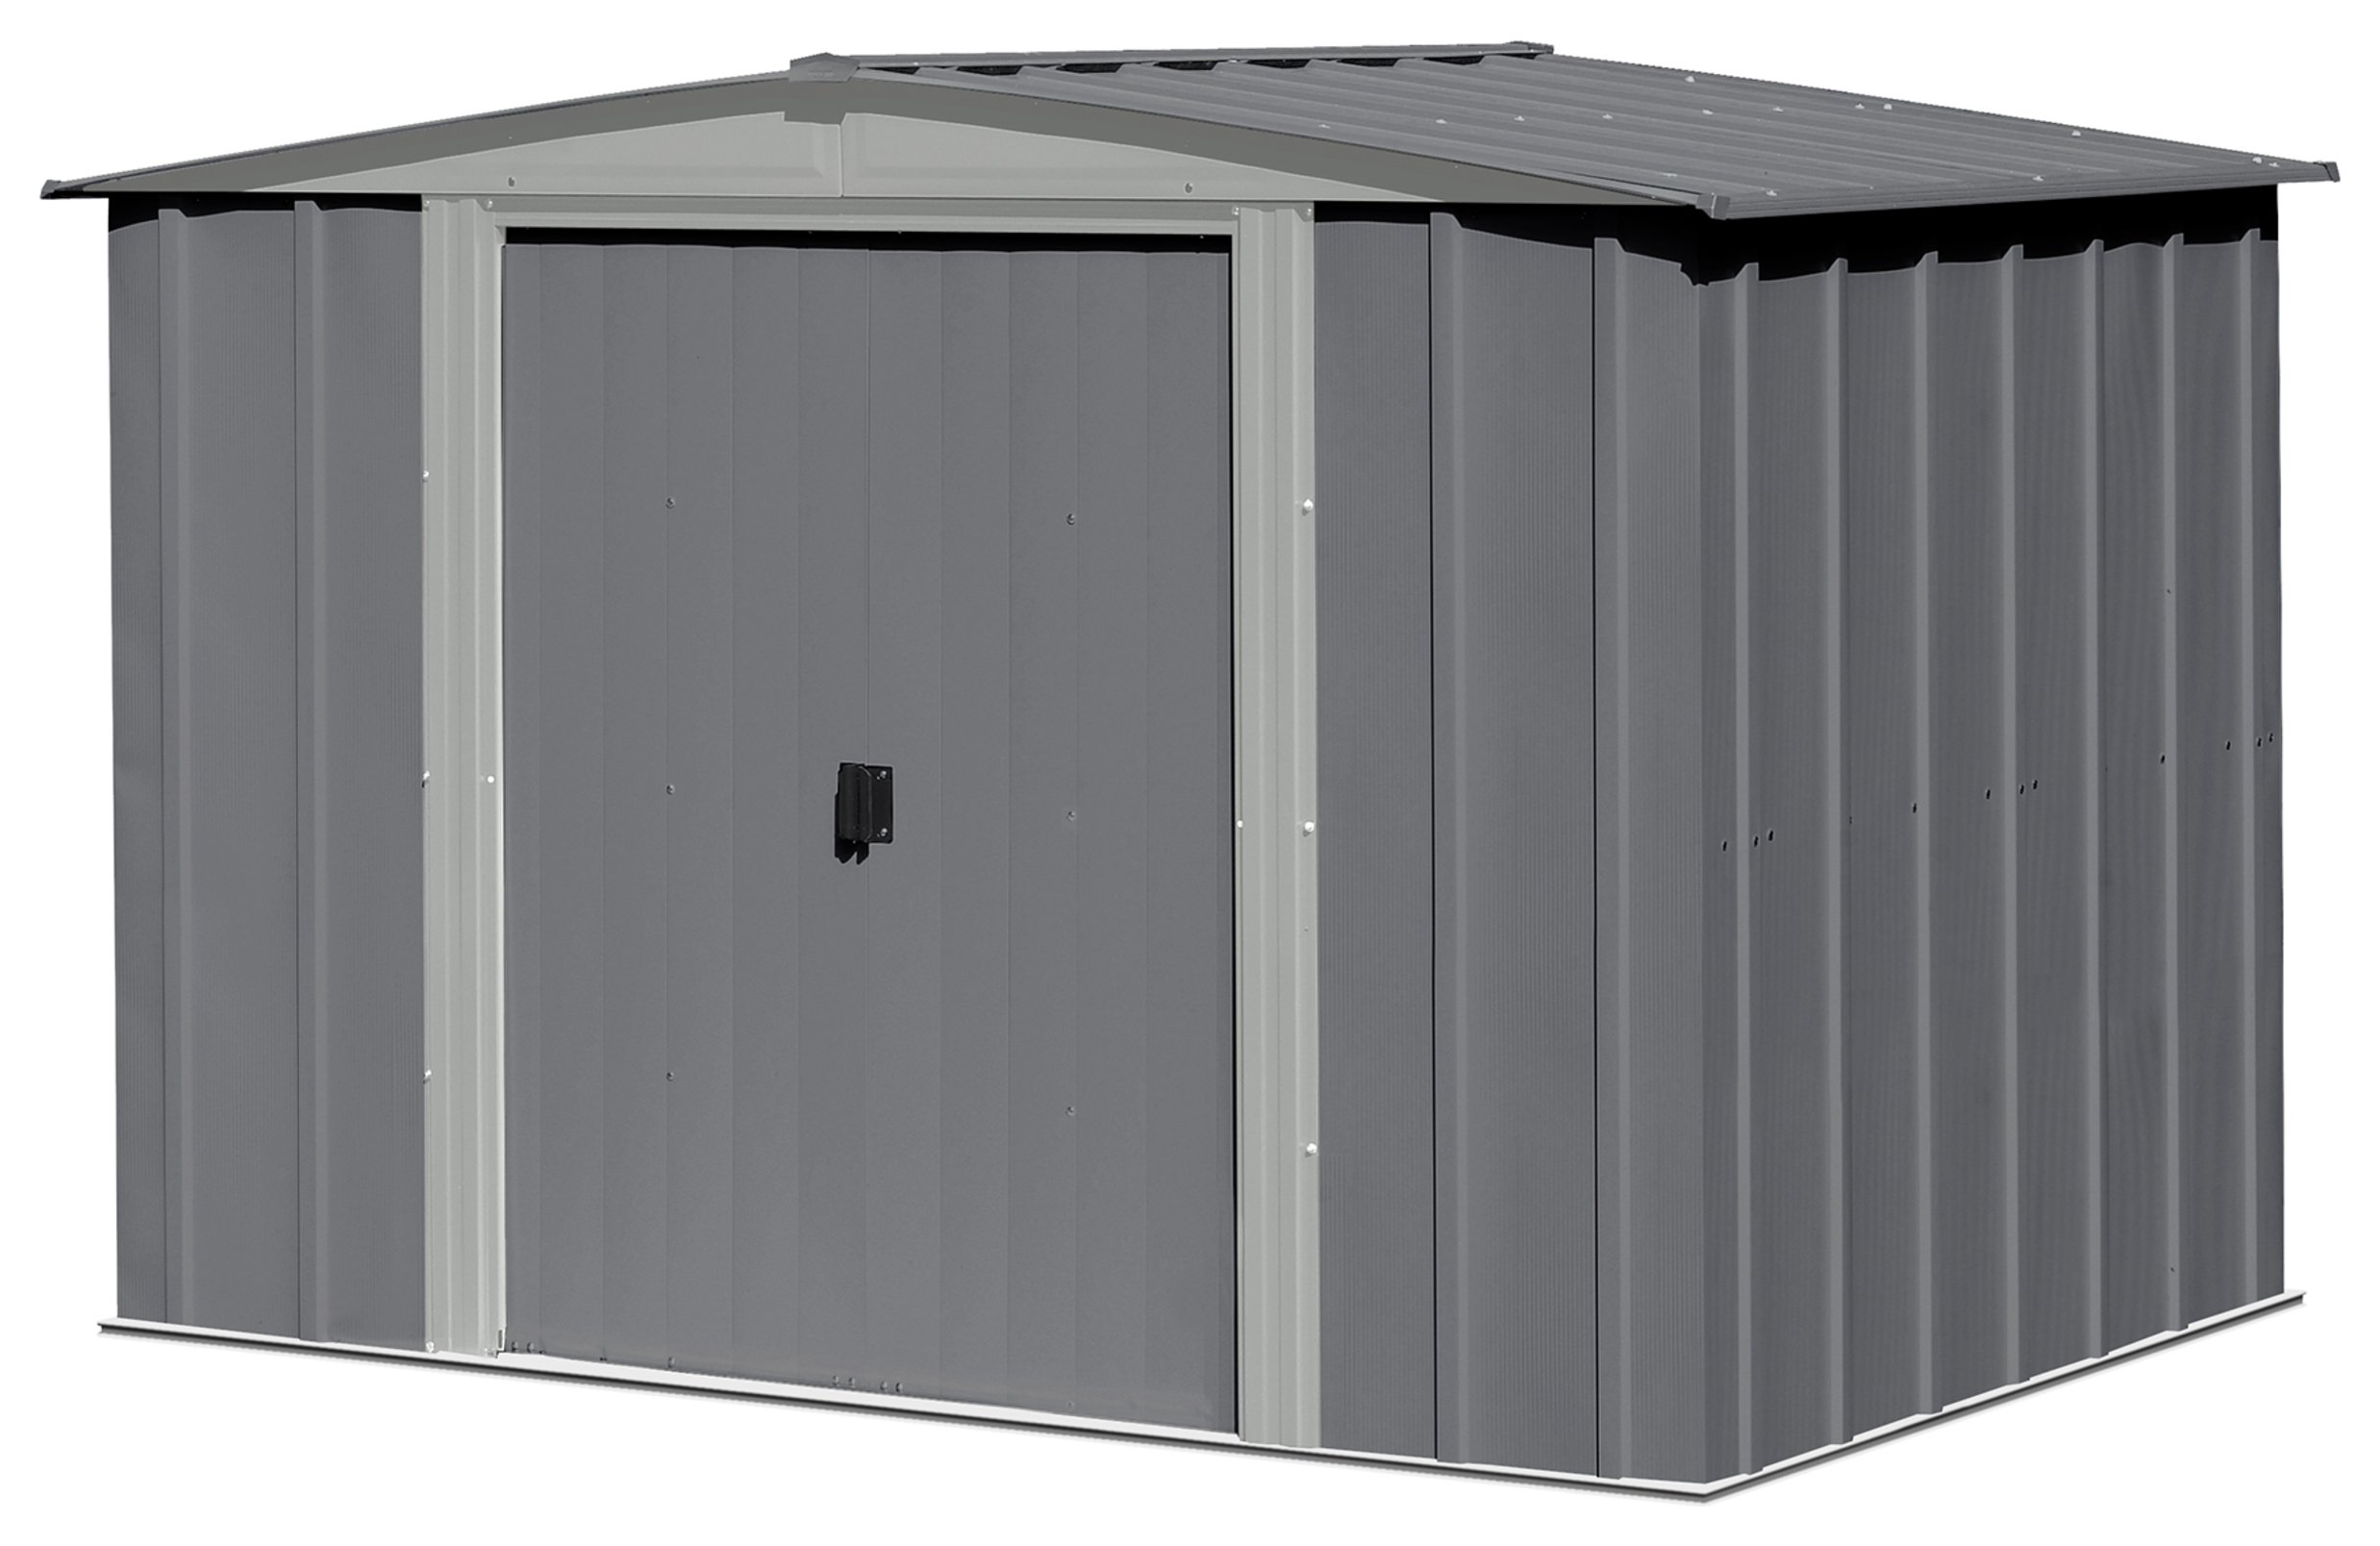 Image of Arrow Apex Metal Garden Shed Dark Grey - 8 x 6ft